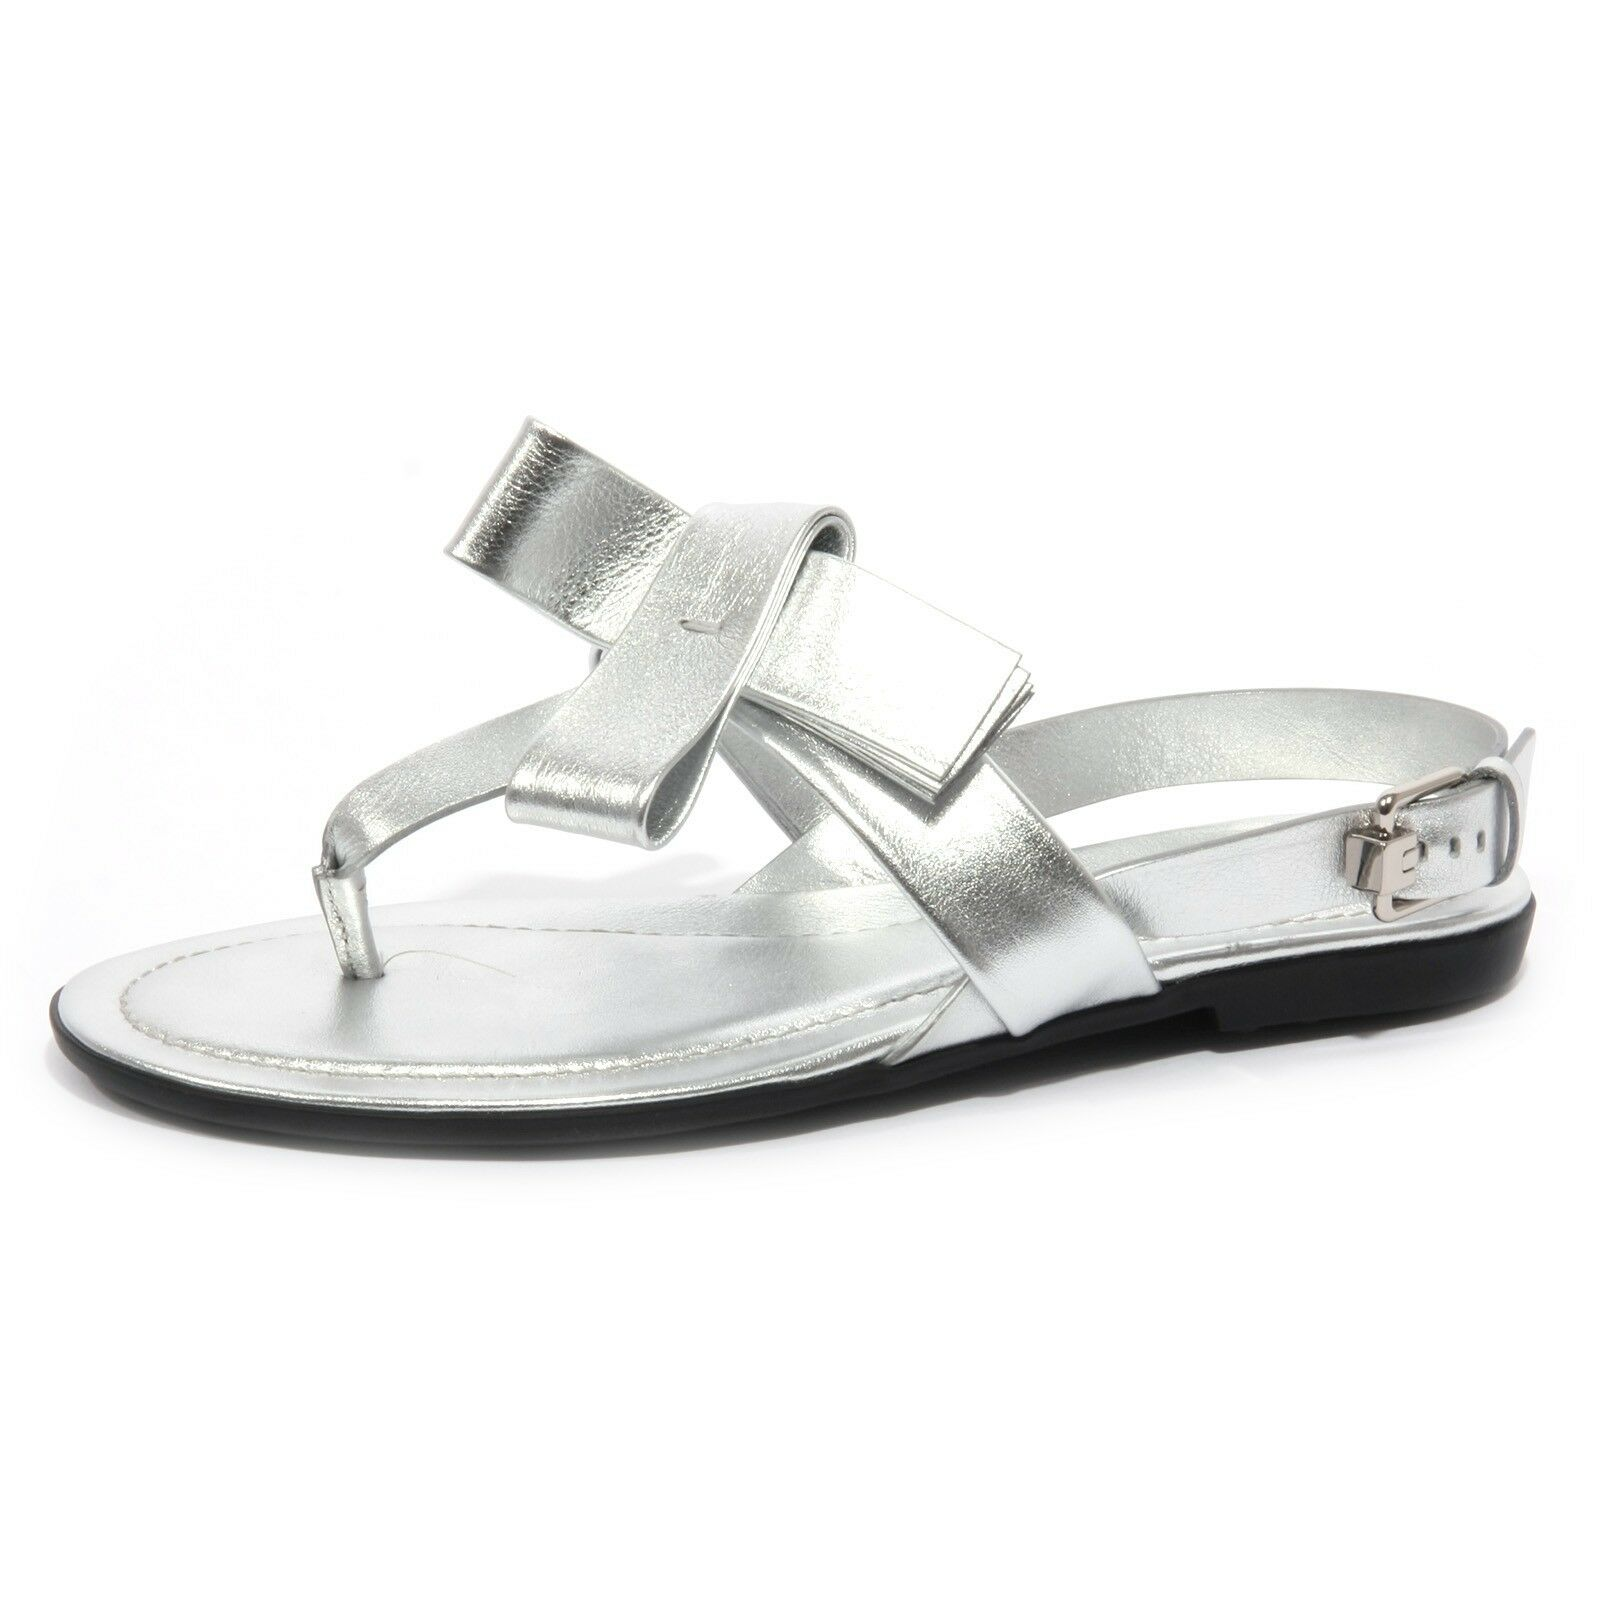 B1563 infradito mujer Tod's sandalo Fiocco plata flip flops zapatos Woman